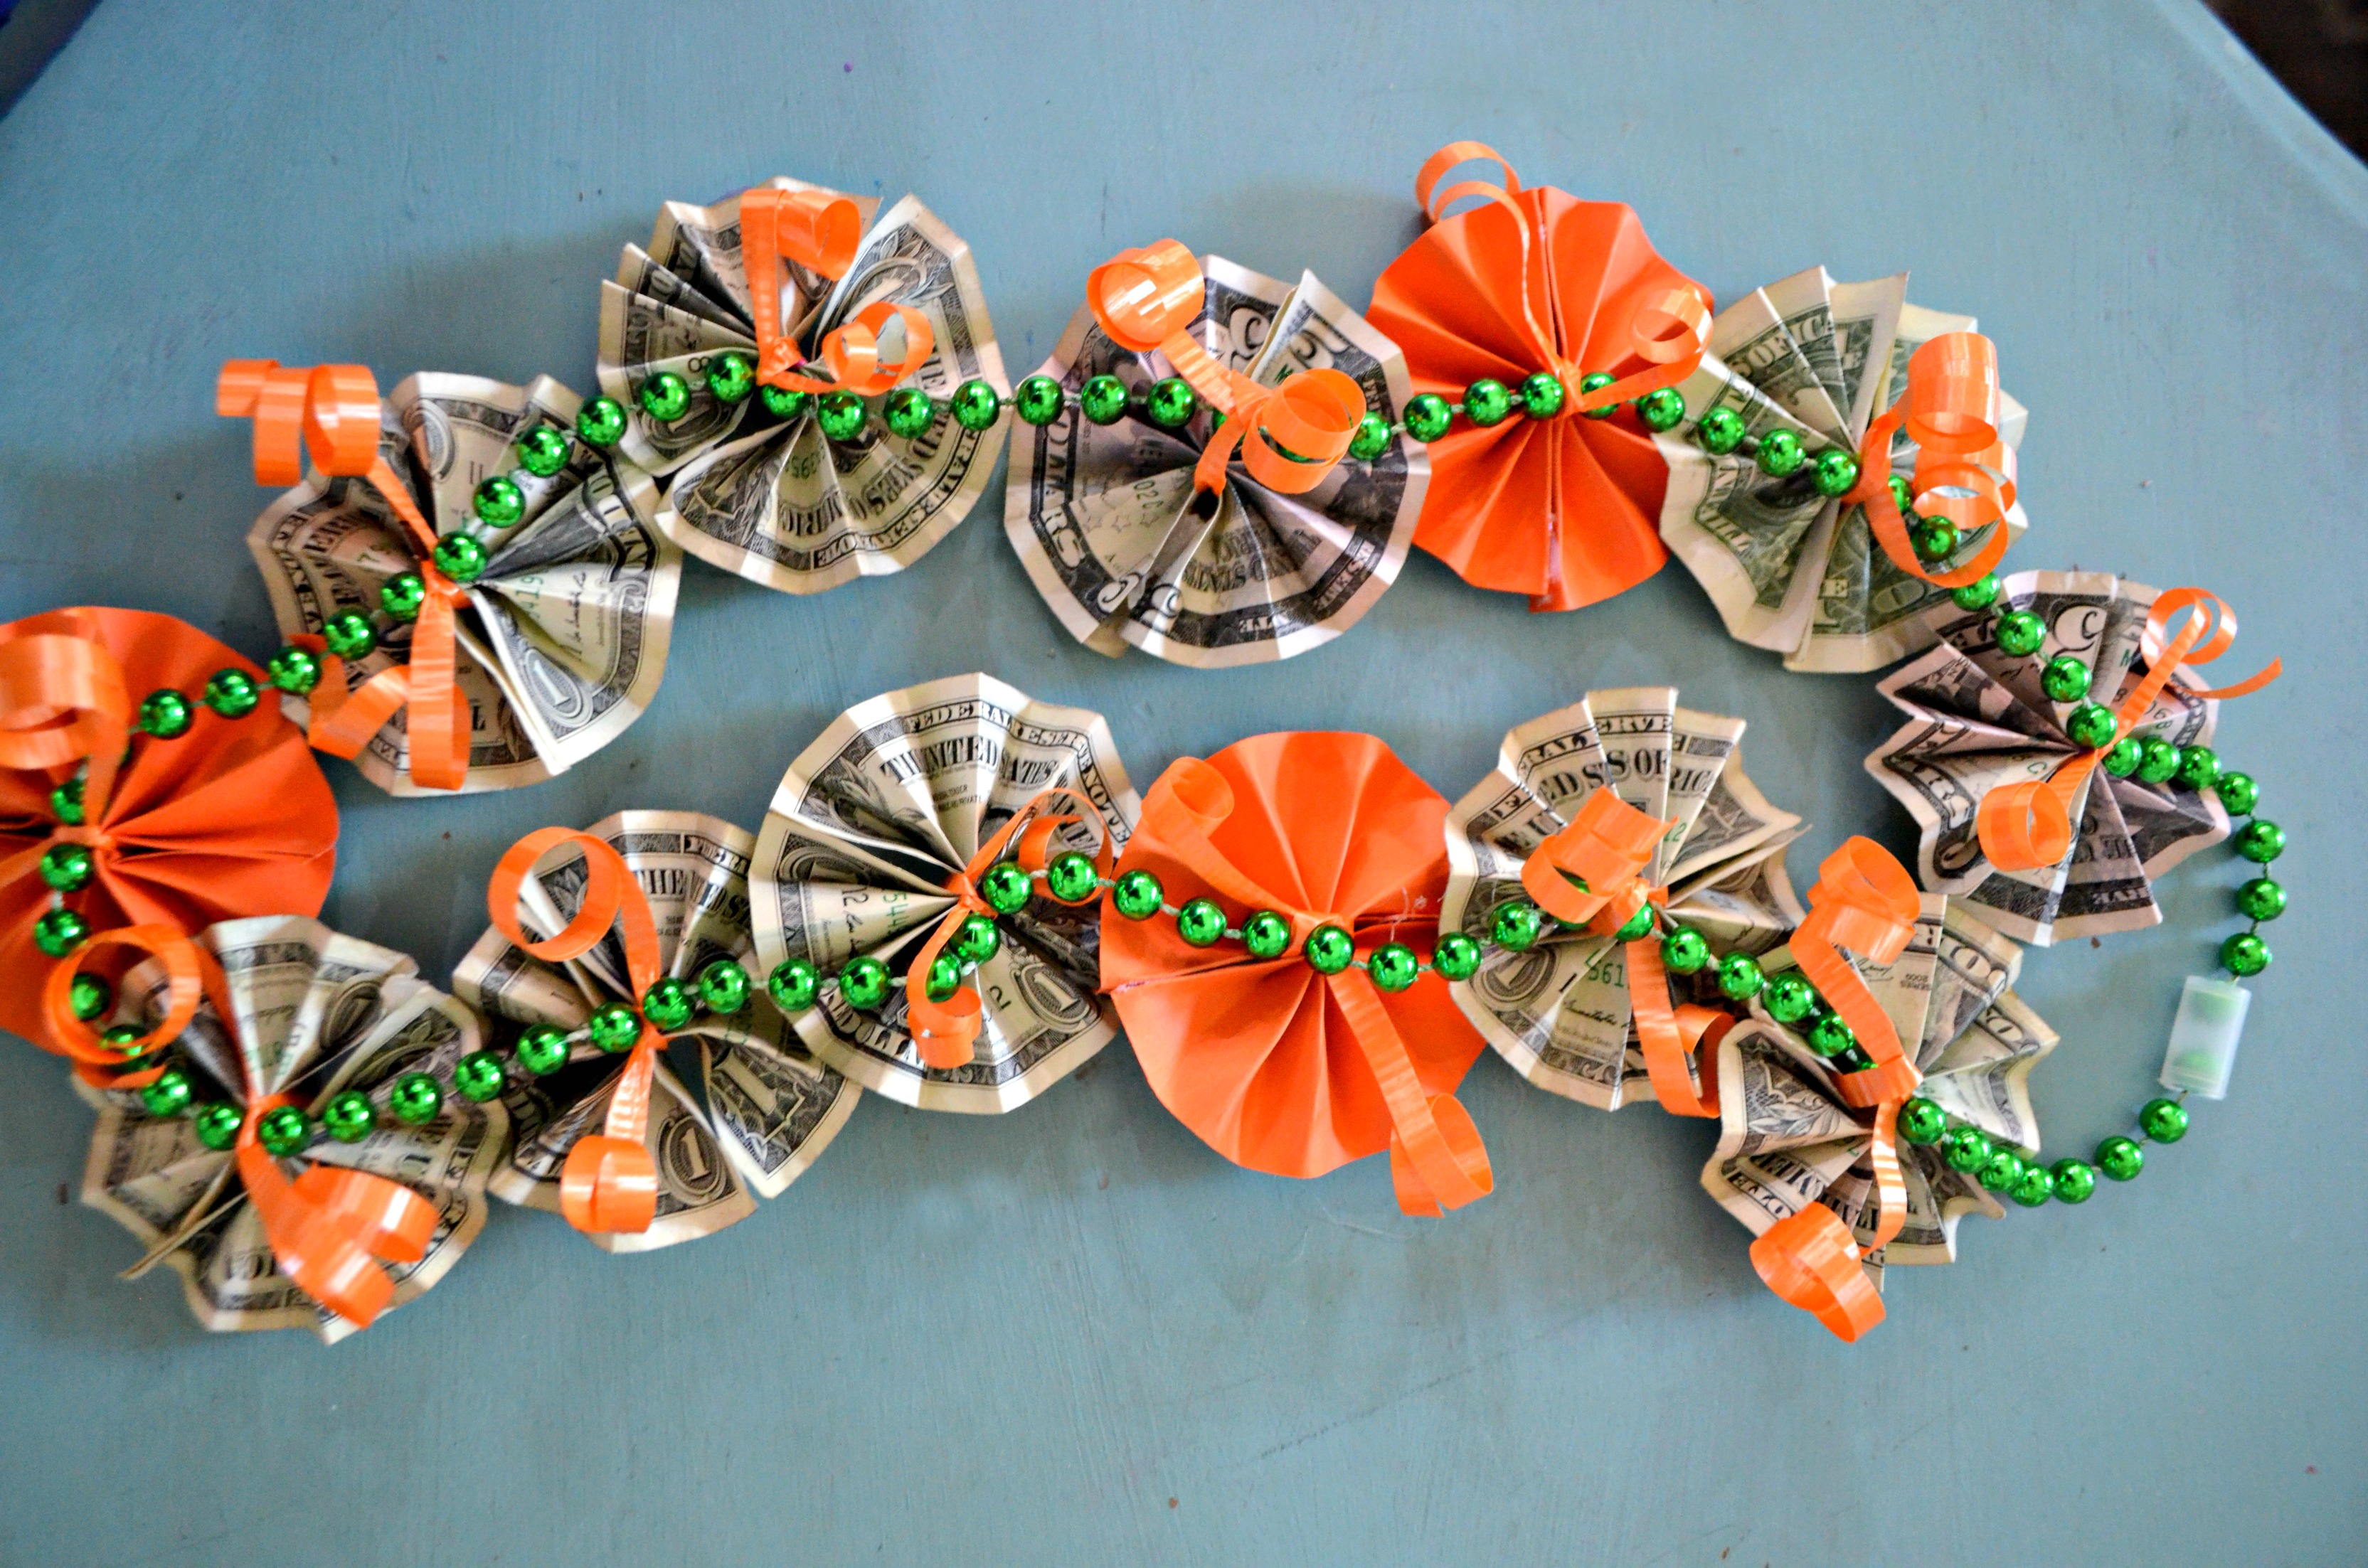 Make this easy DIY graduation gift money lei from cash and construction paper.